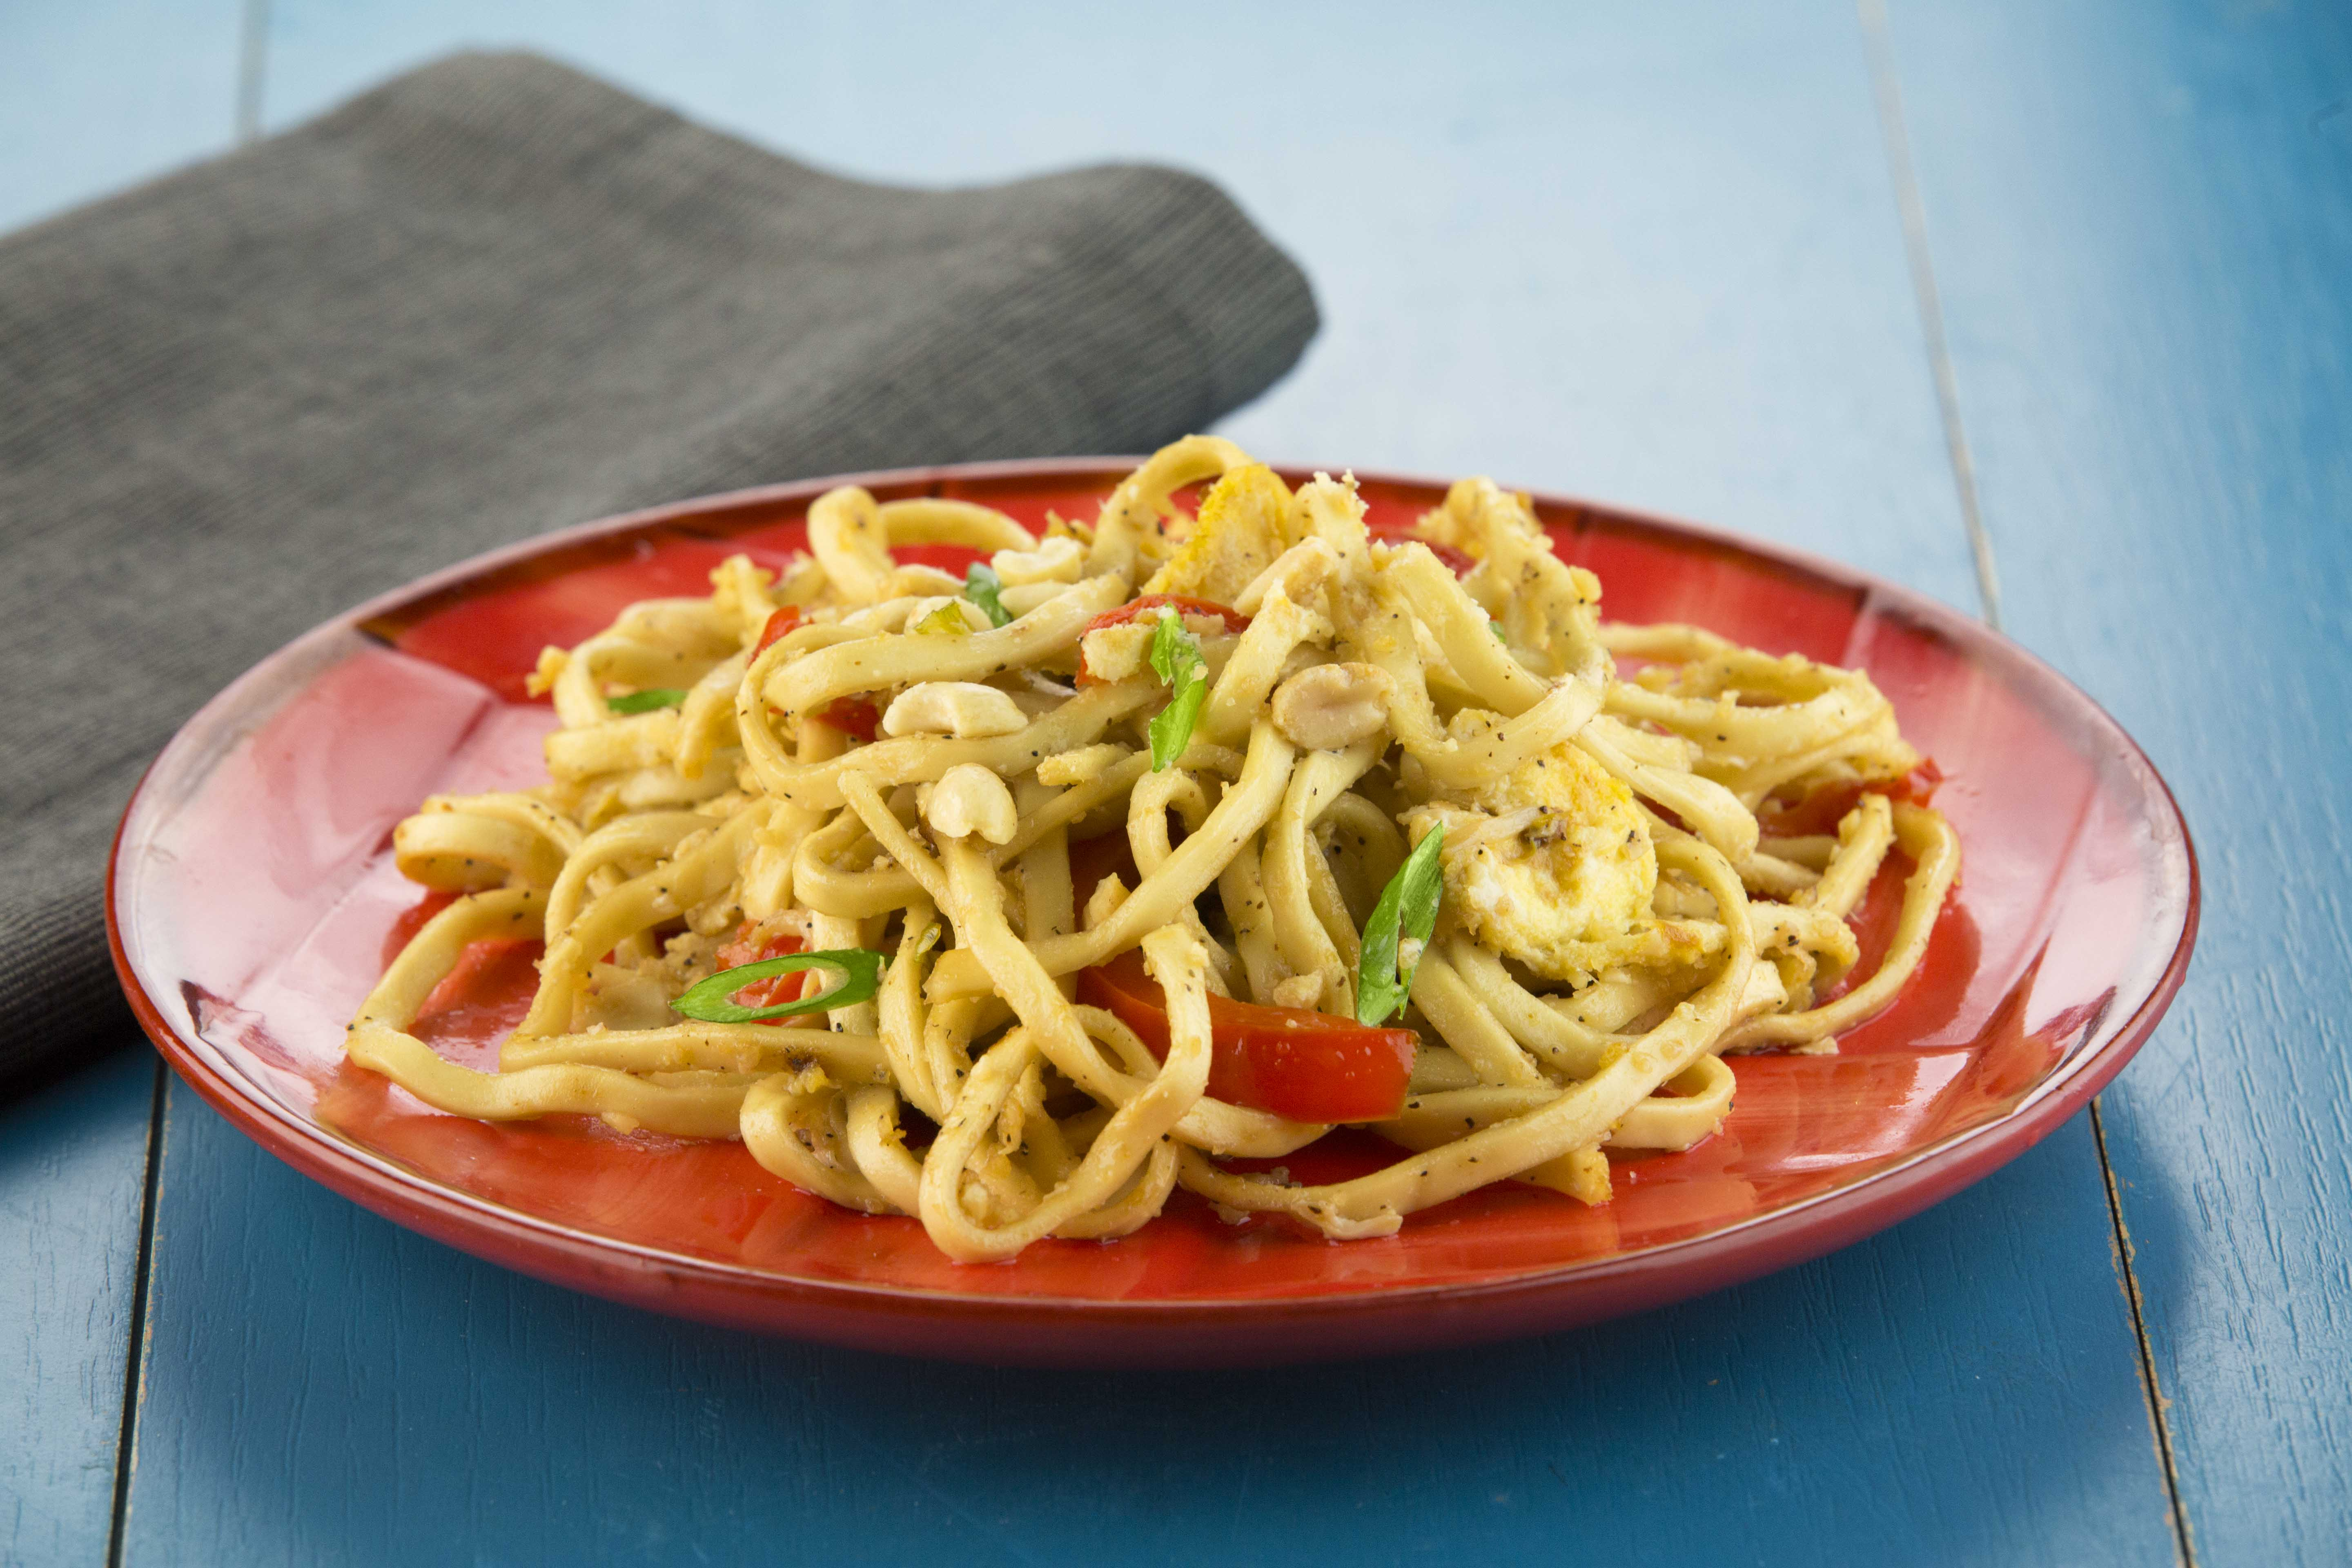 PadThaiwithLoMeinNoodles-1